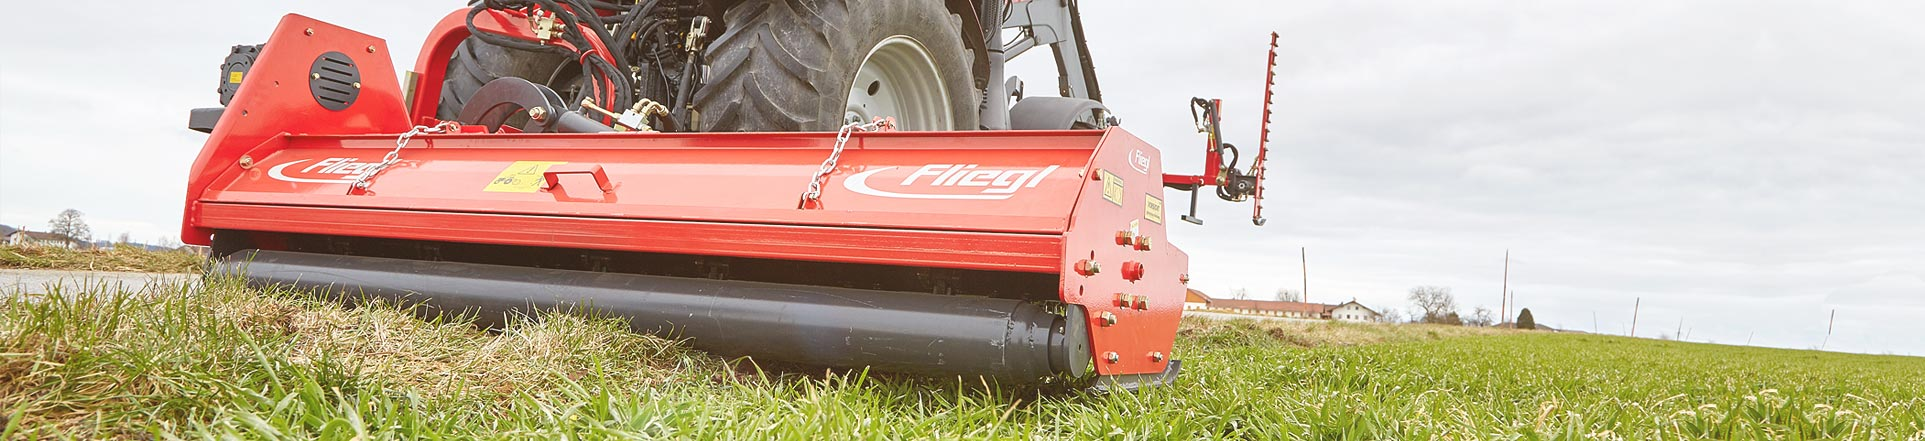 Flail mower with three-point hitch